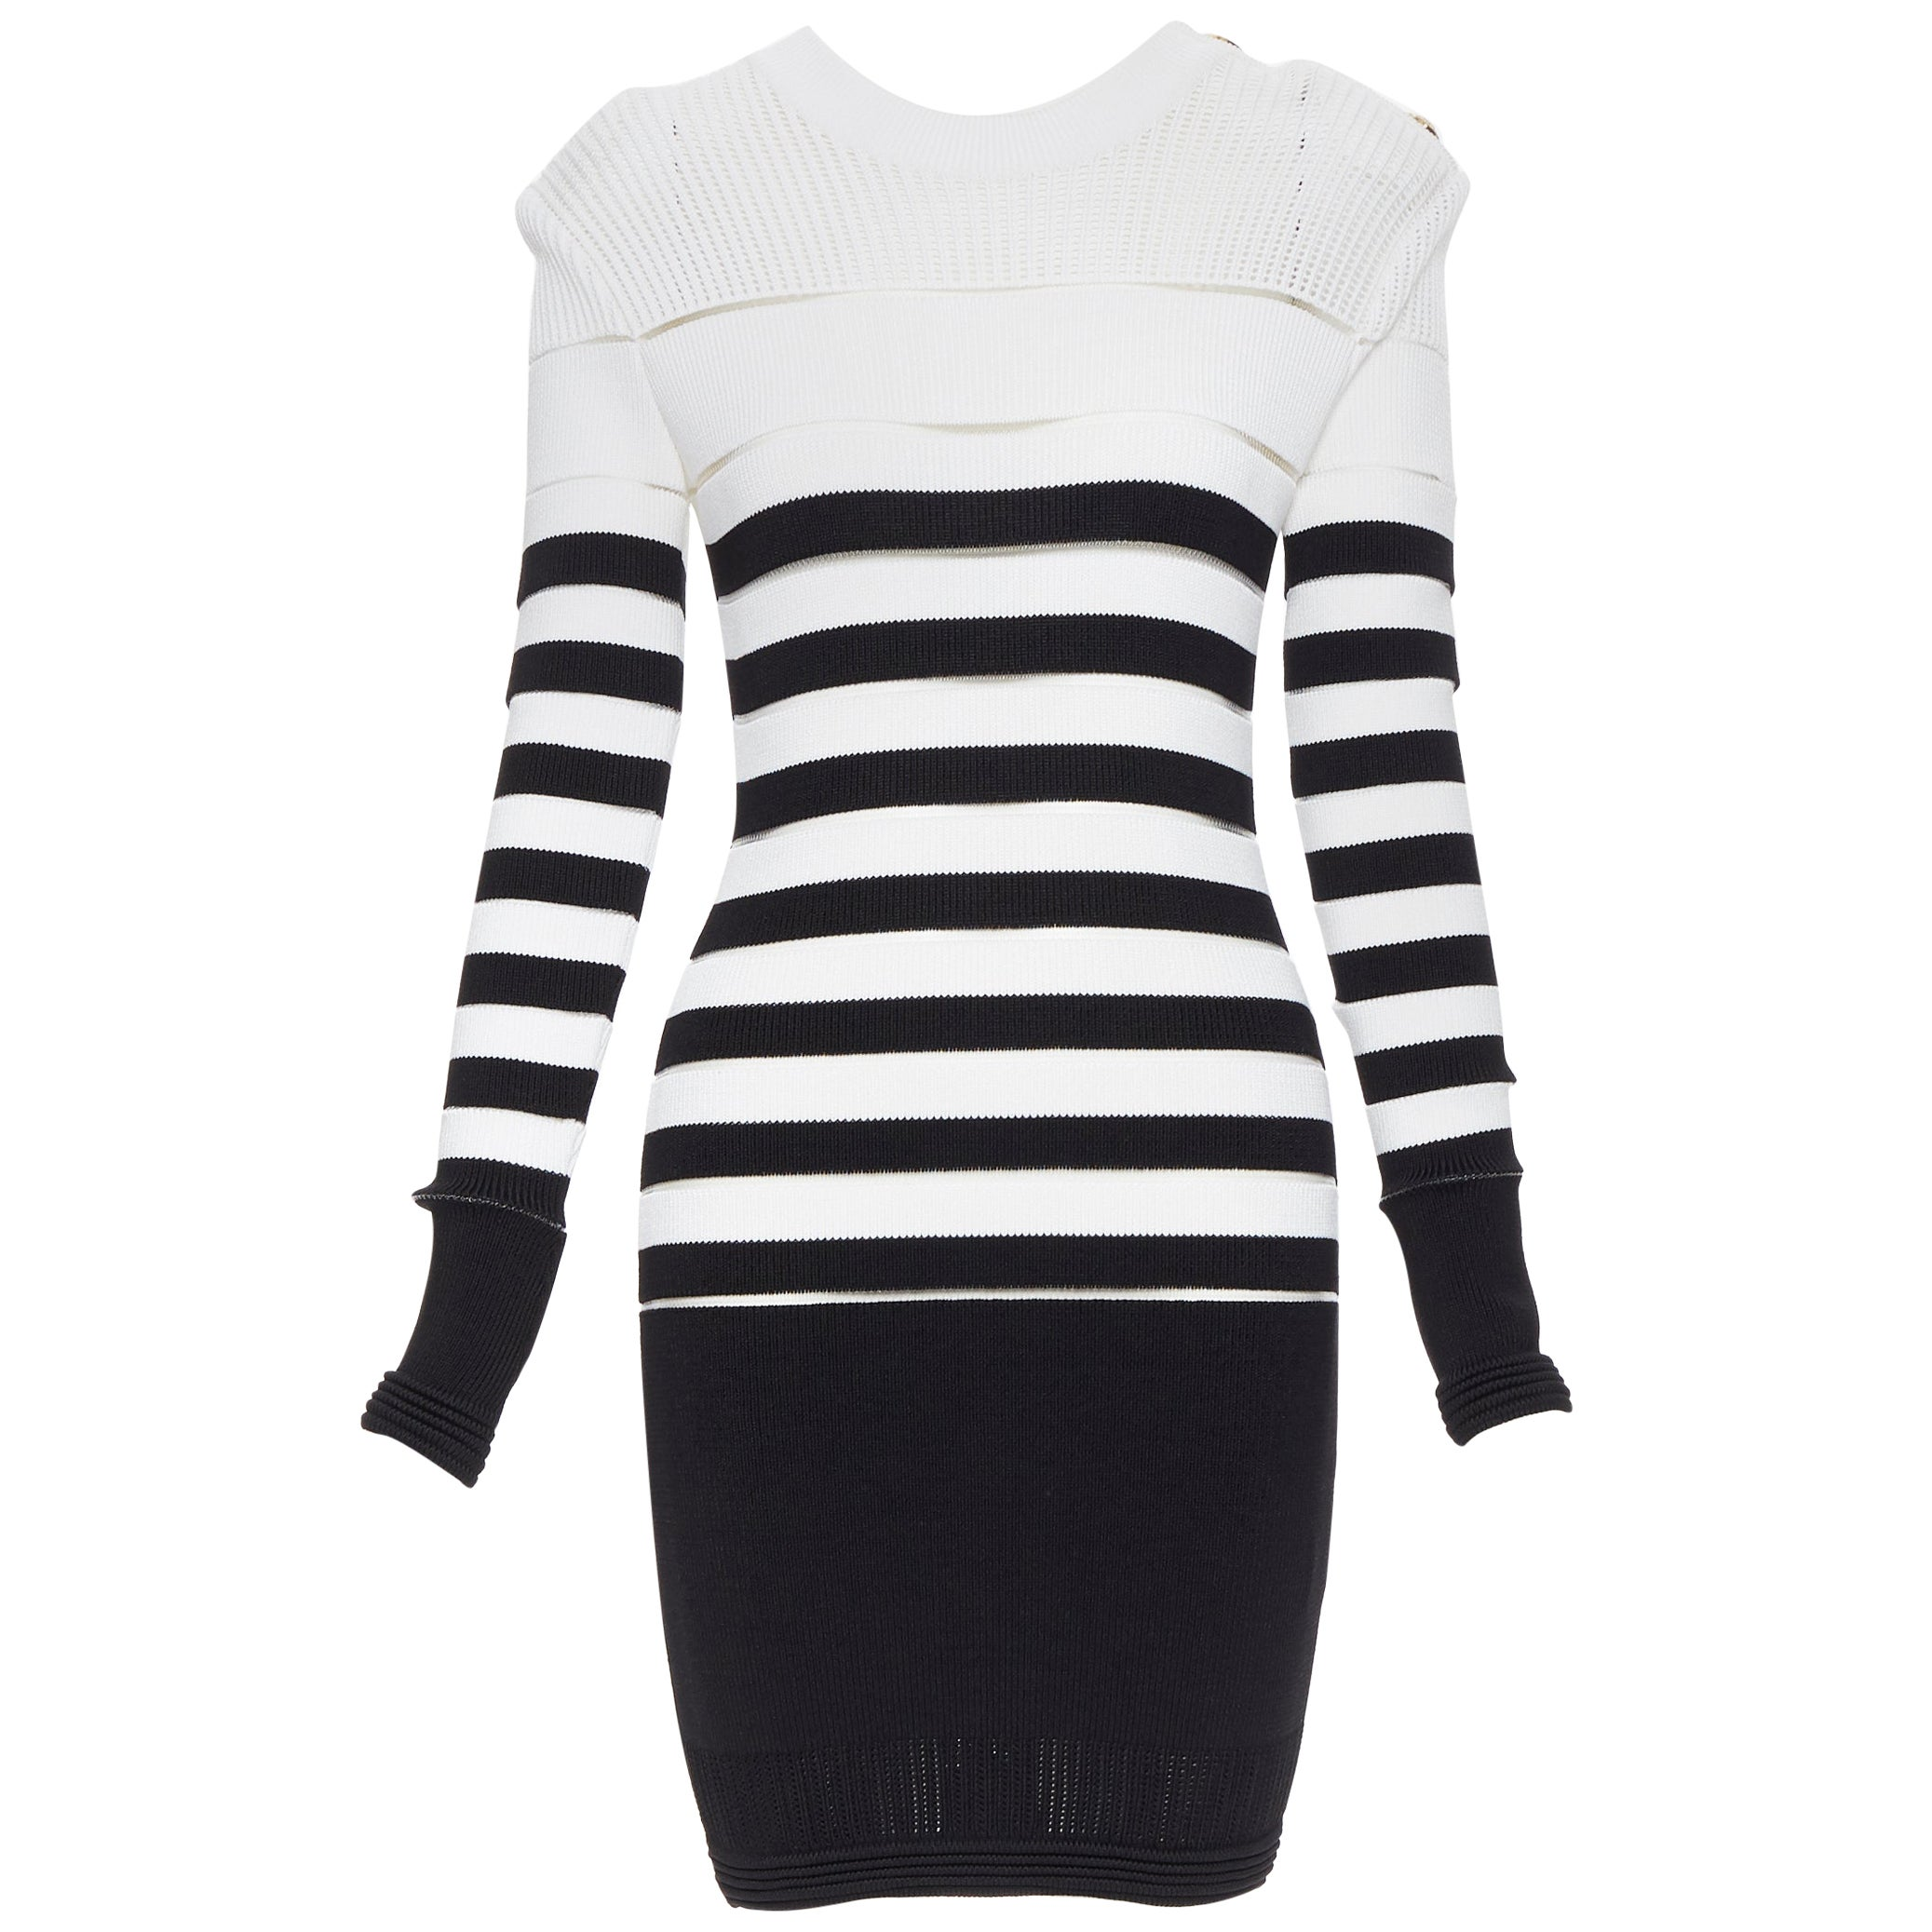 new BALMAIN black white sheer mesh stripe military crochet knit bodycon dress S